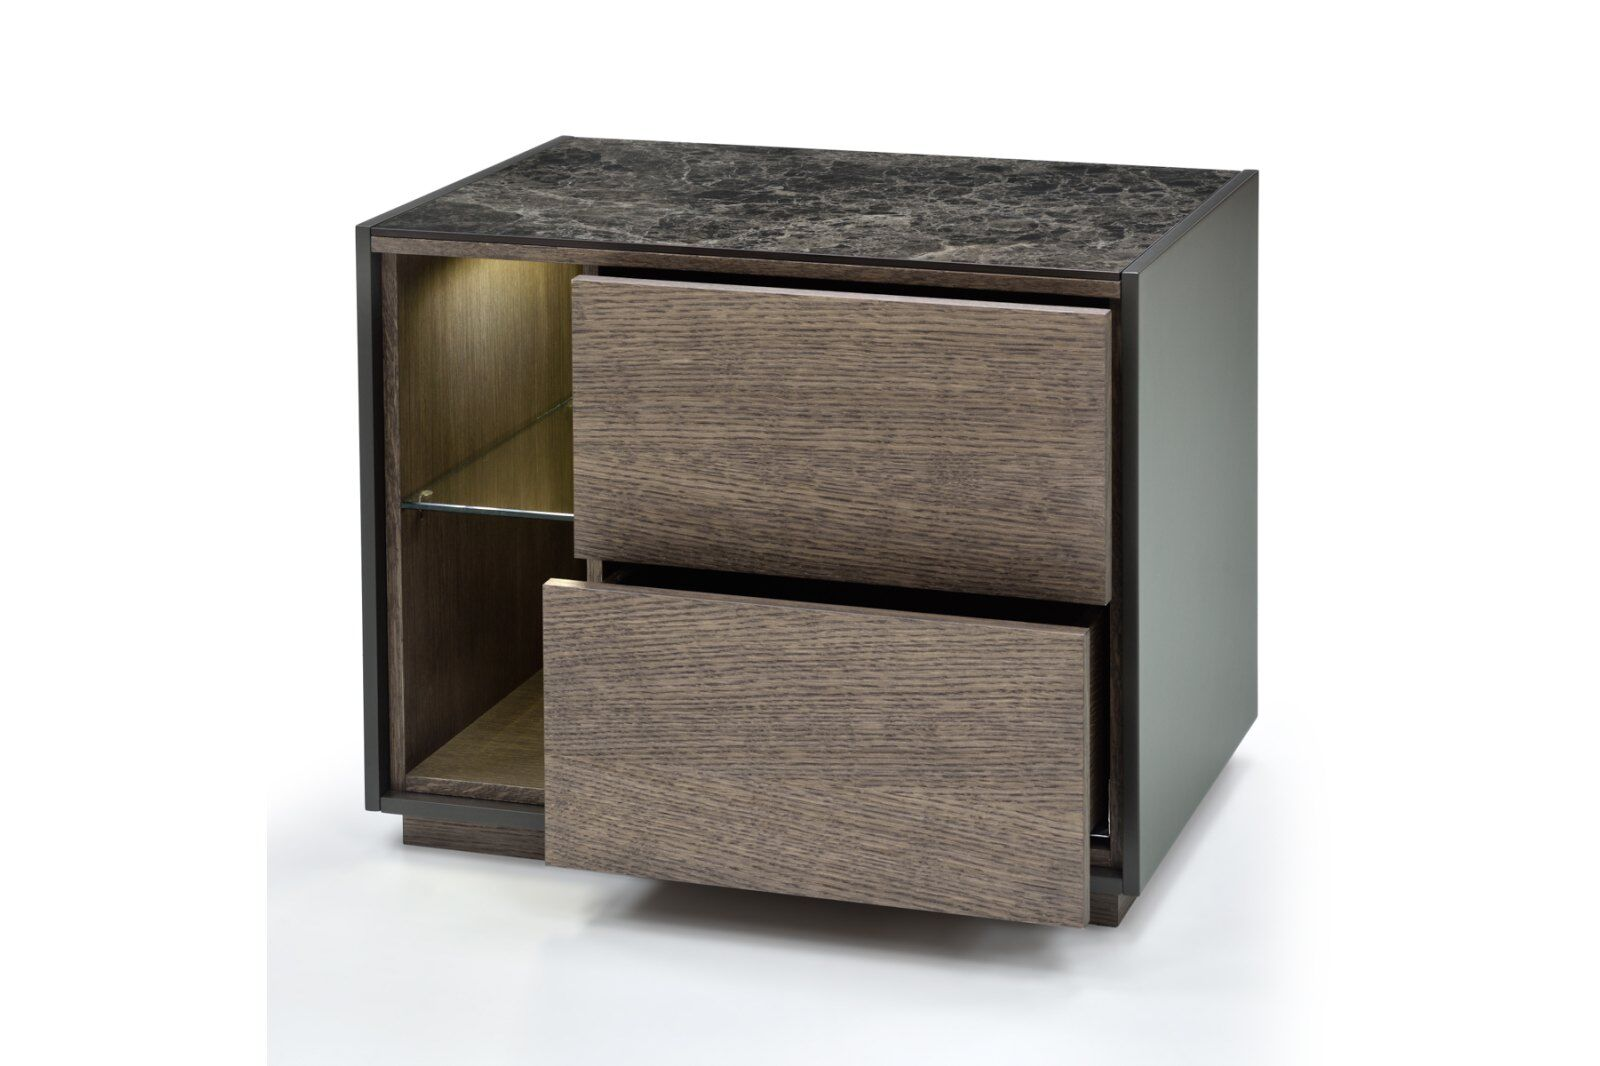 Tosca Marble-effect Top Bedside Table 60cm / 1